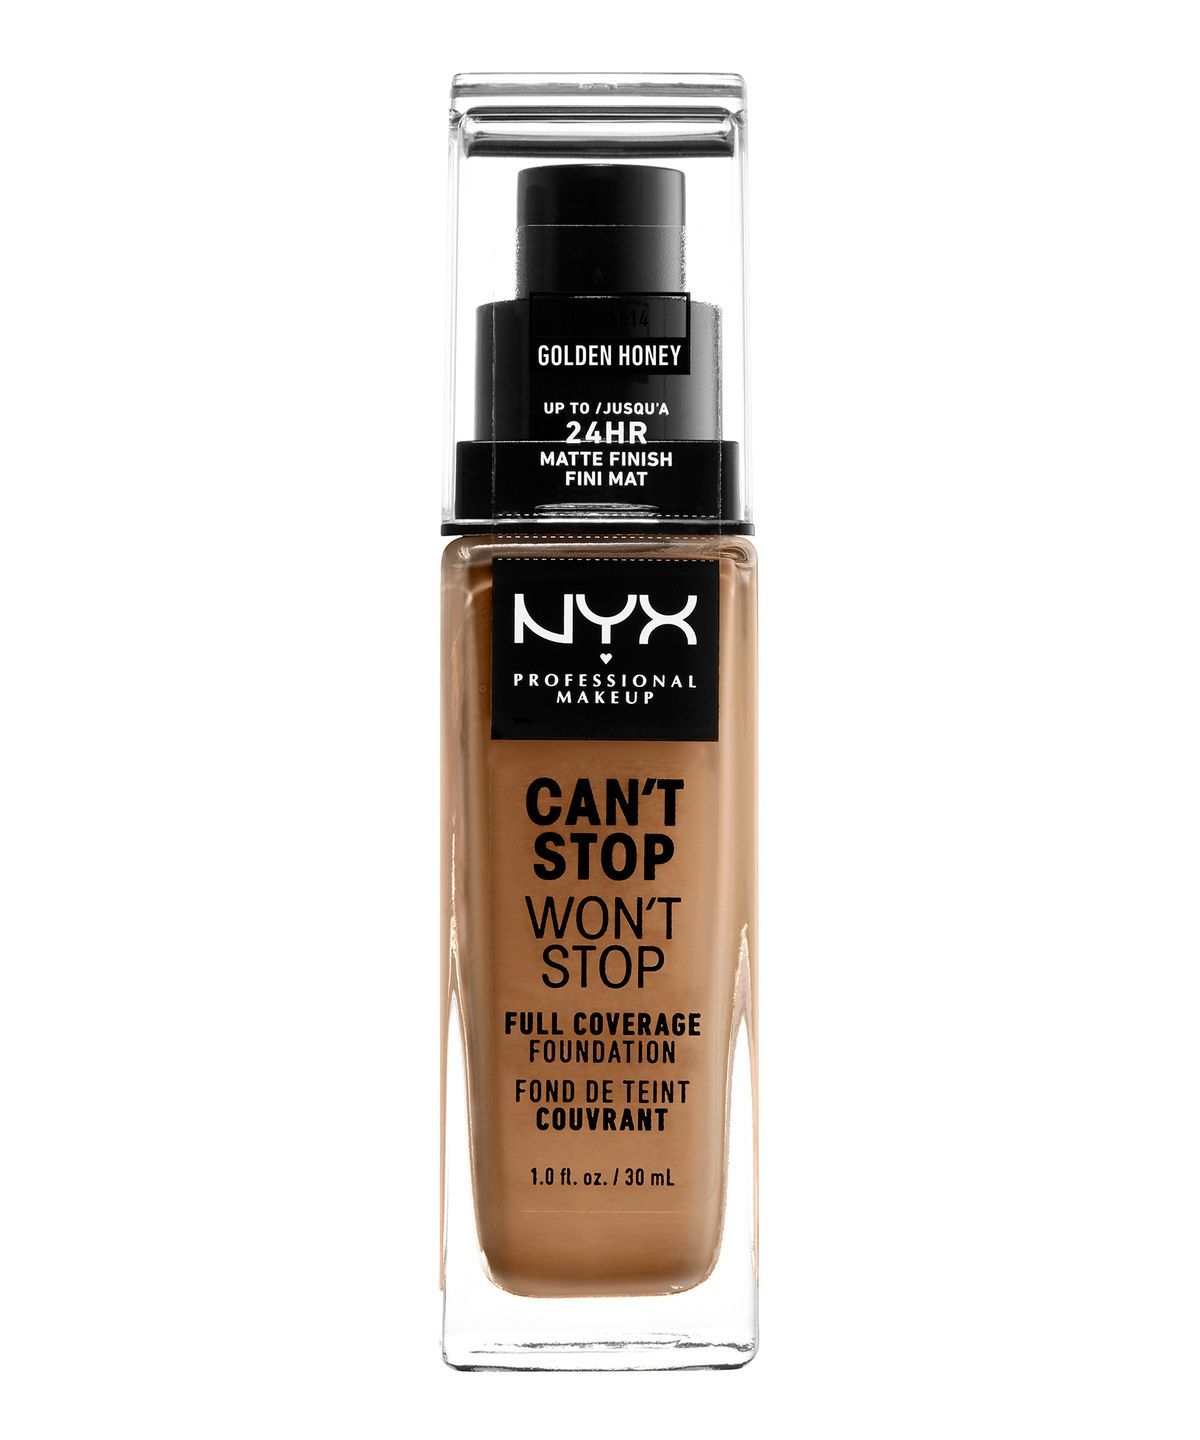 CANT STOP WONT STOP 24HR FOUNDATION GOLDEN HONEY - NYX PROFESSIONAL MAKEUP